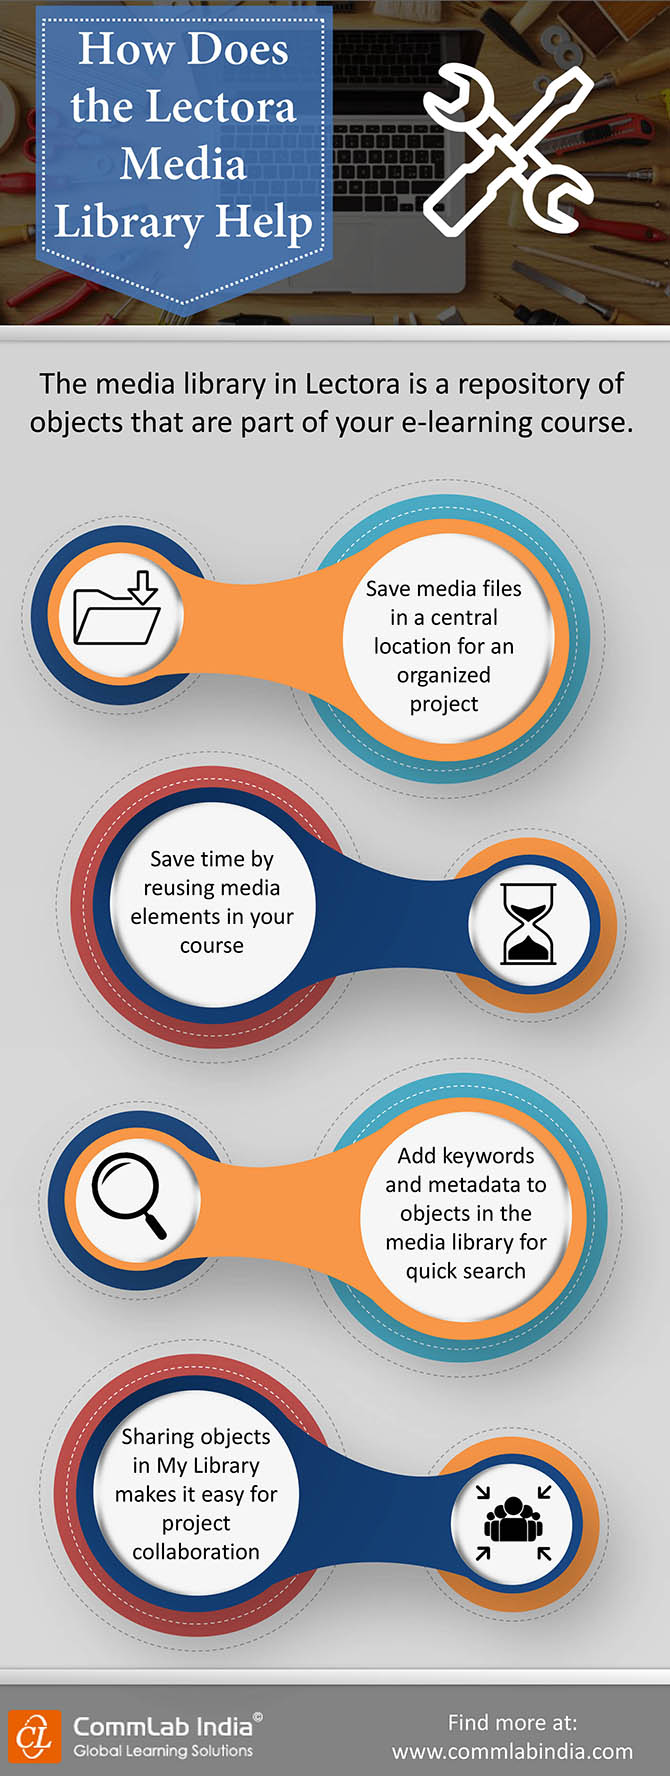 How Does the Lectora Media Library Help? [Infographic]